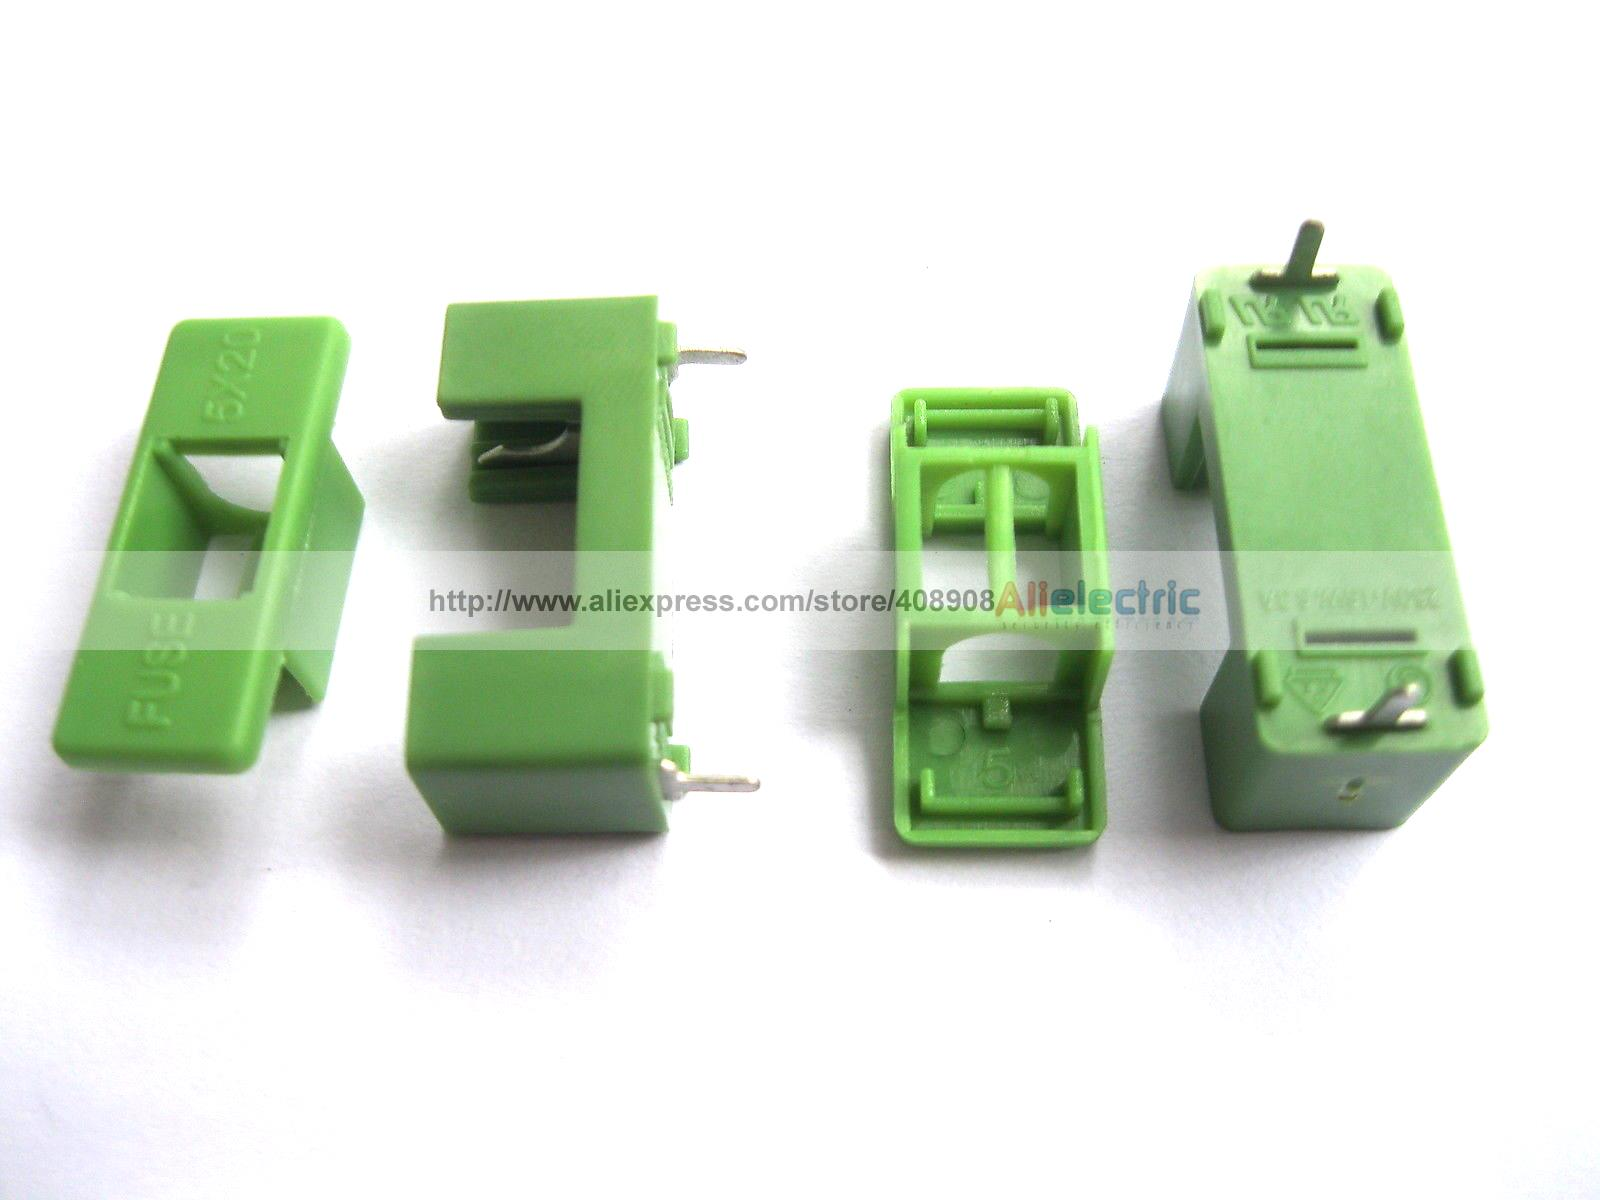 100 Pcs PTF 7 DIP Fuse Holder 6 3A 250V Used for 5x20 Green Color